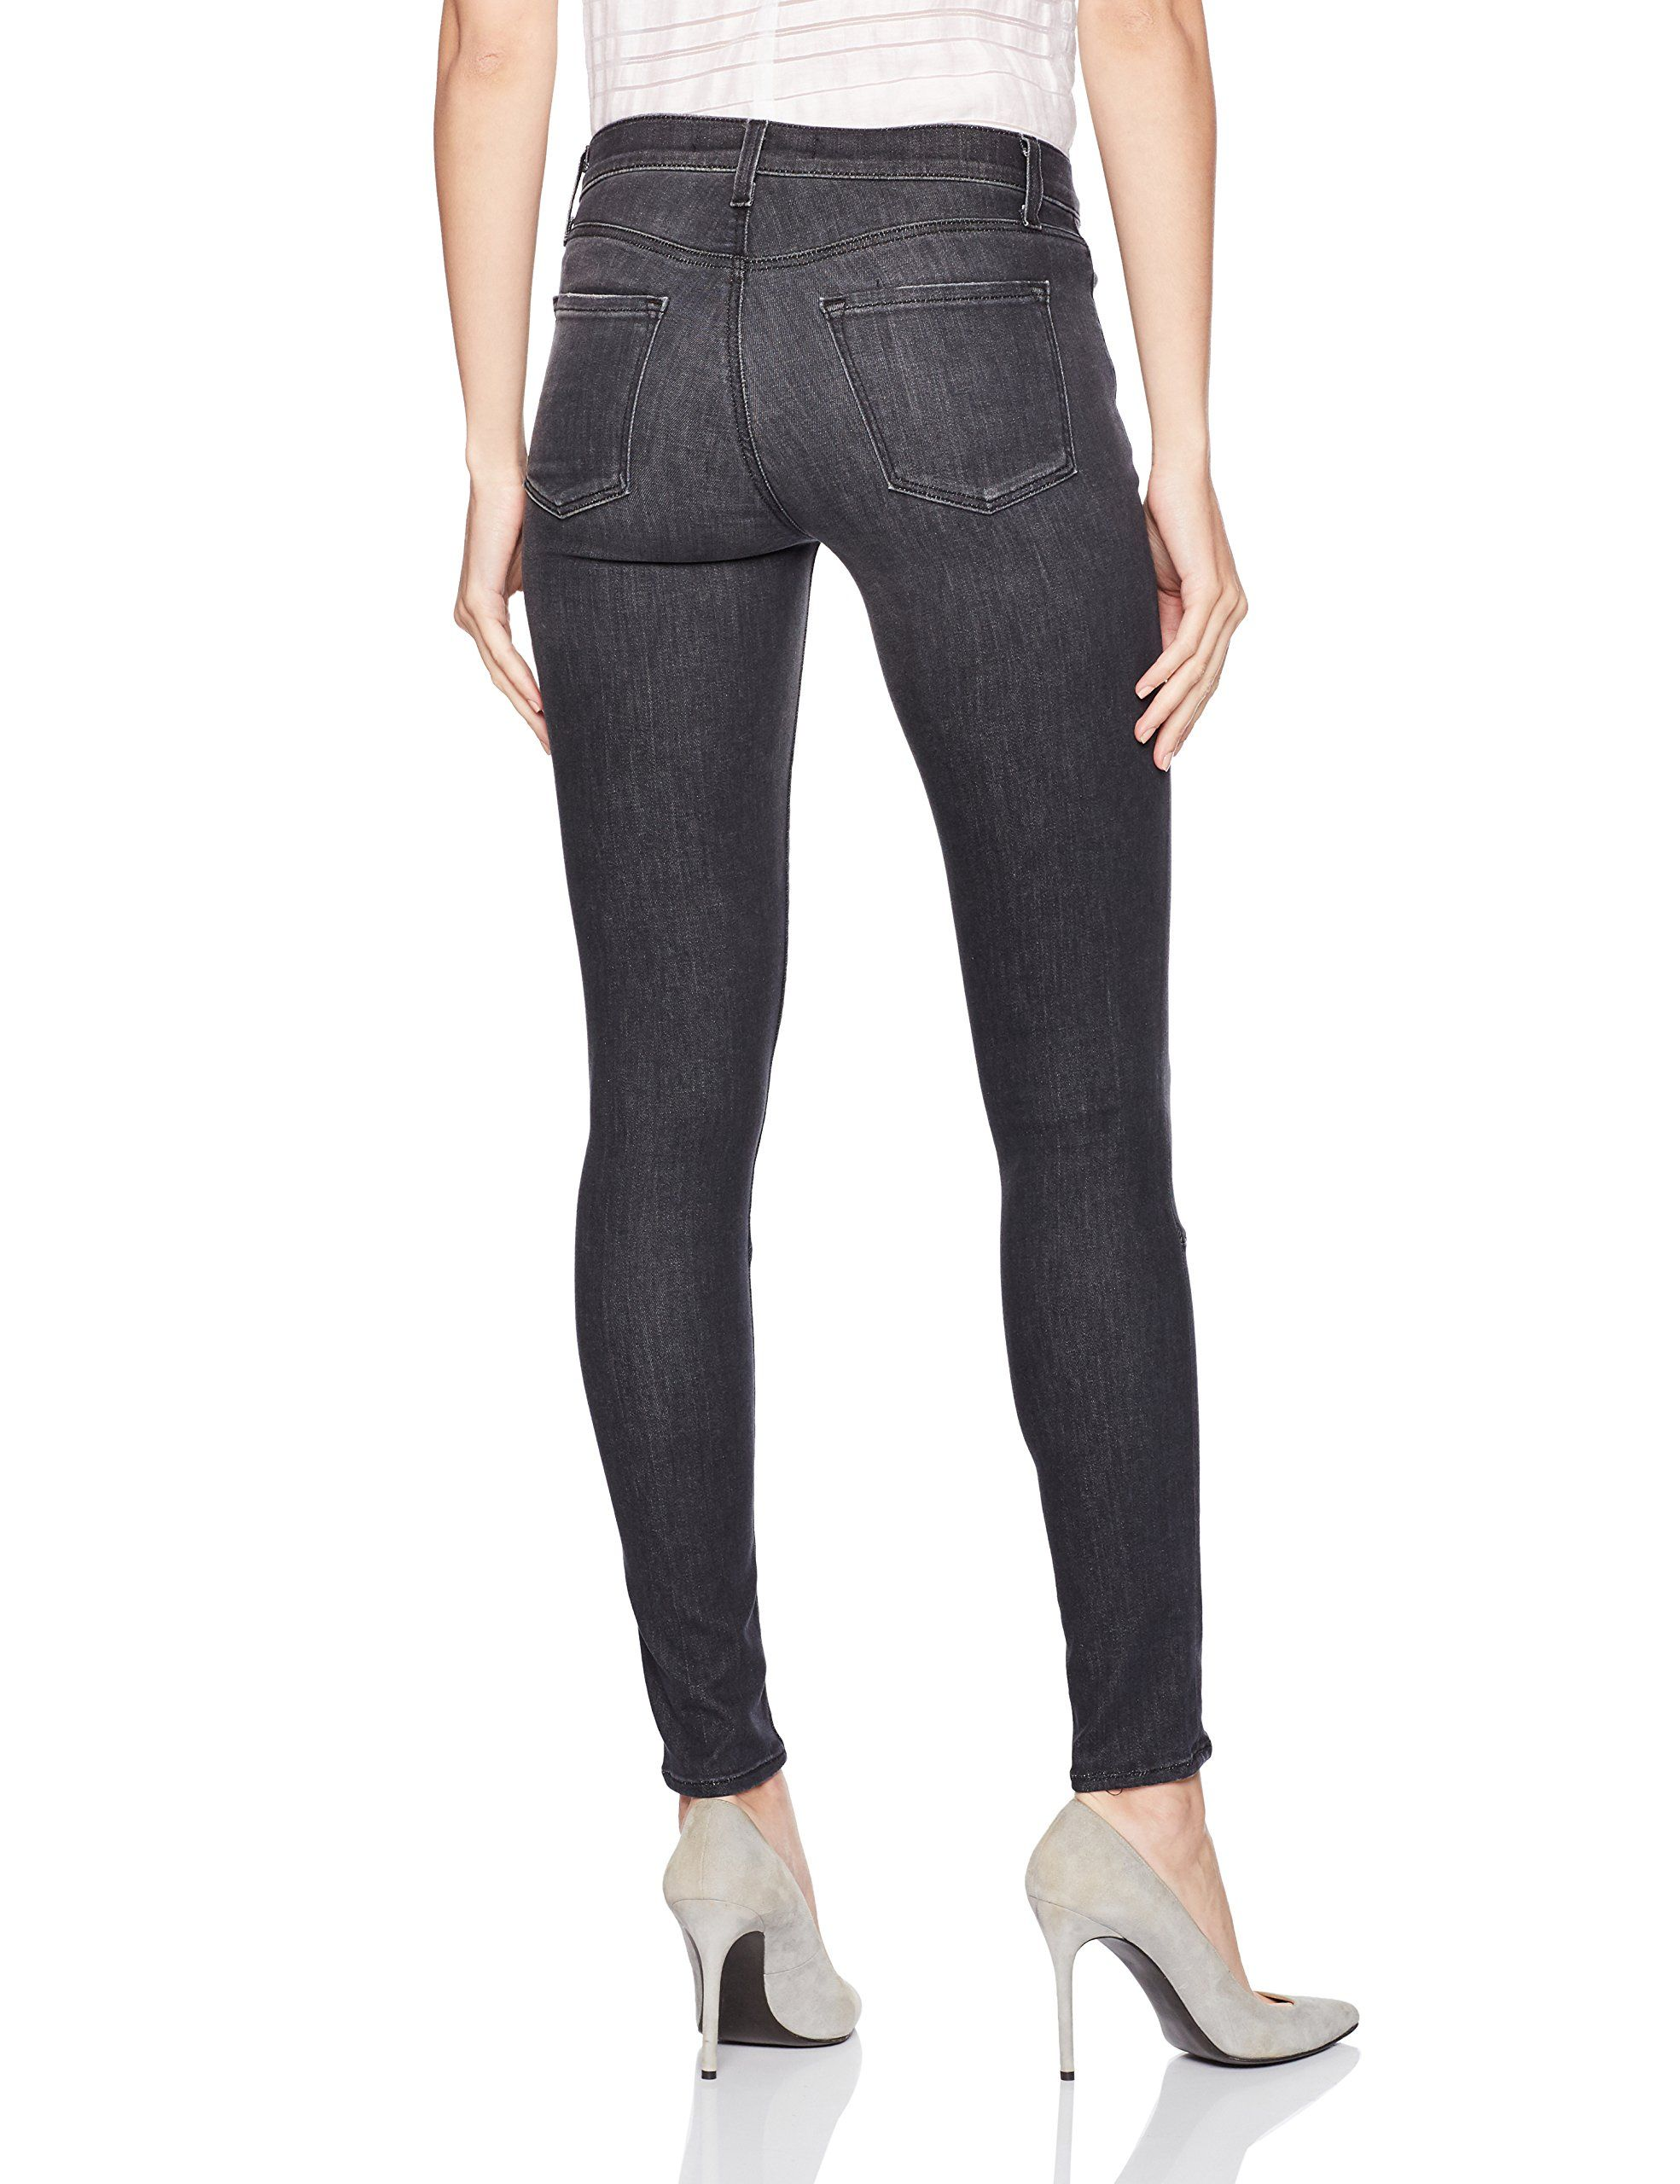 1f93bb8552d6 J Brand Jeans Womens 620 Mid Rise Super Skinny with Zip Jeans Black Heath  28 ** Click on the image for additional details.(It is Amazon affiliate  link) # ...